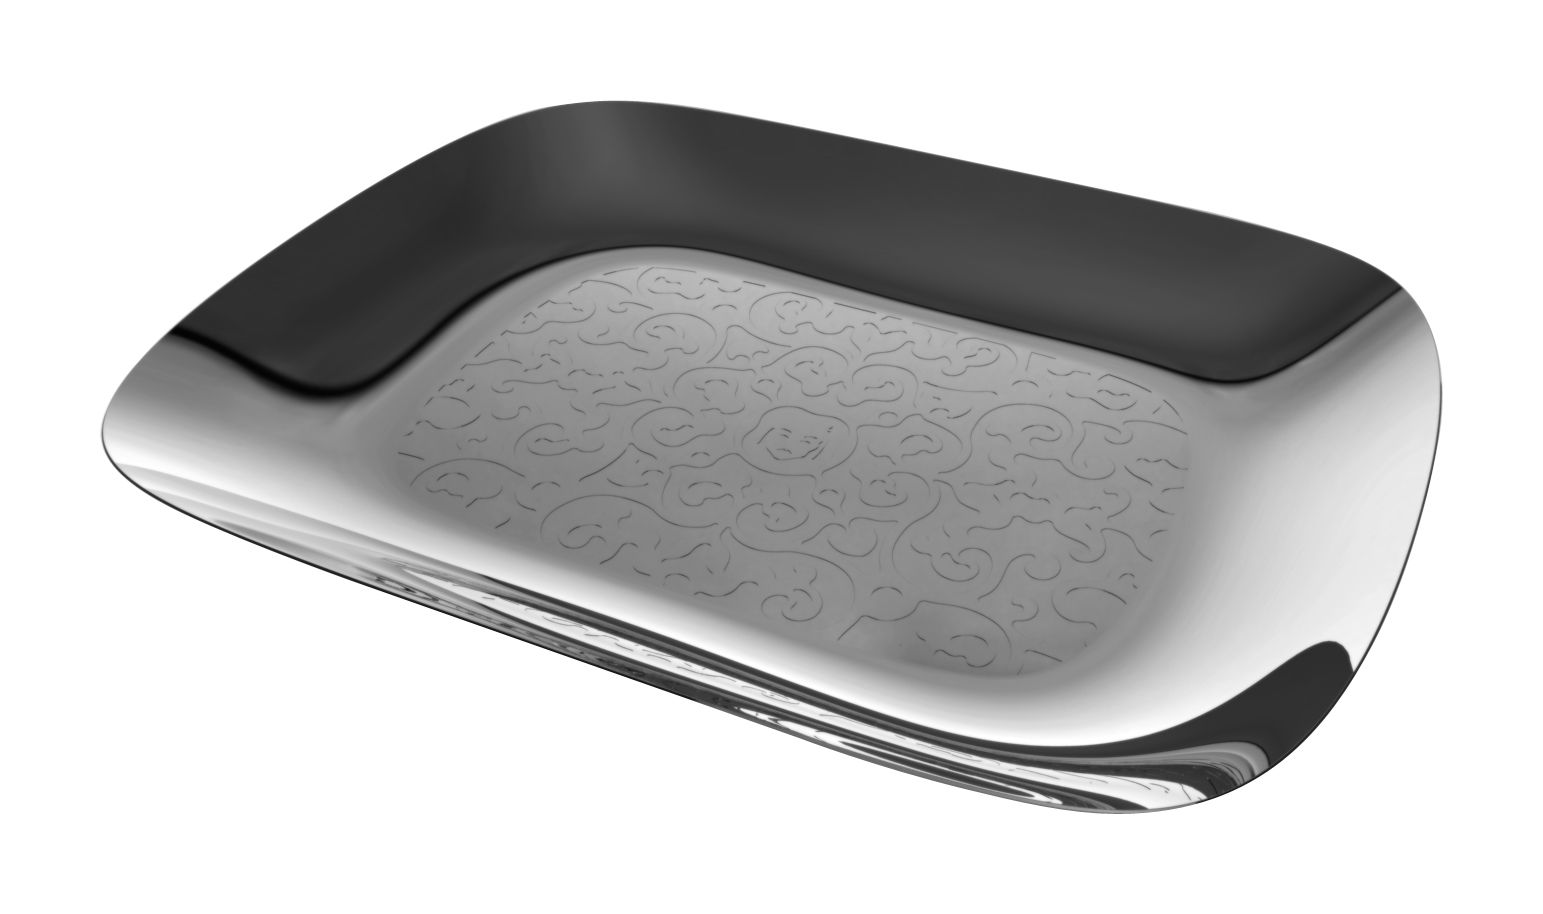 Tableware - Trays - Dressed Tray - Rectangular 45 x 34 cm by Alessi - 45 x 34 cm - Mirror polished steel - Glossy stainless steel